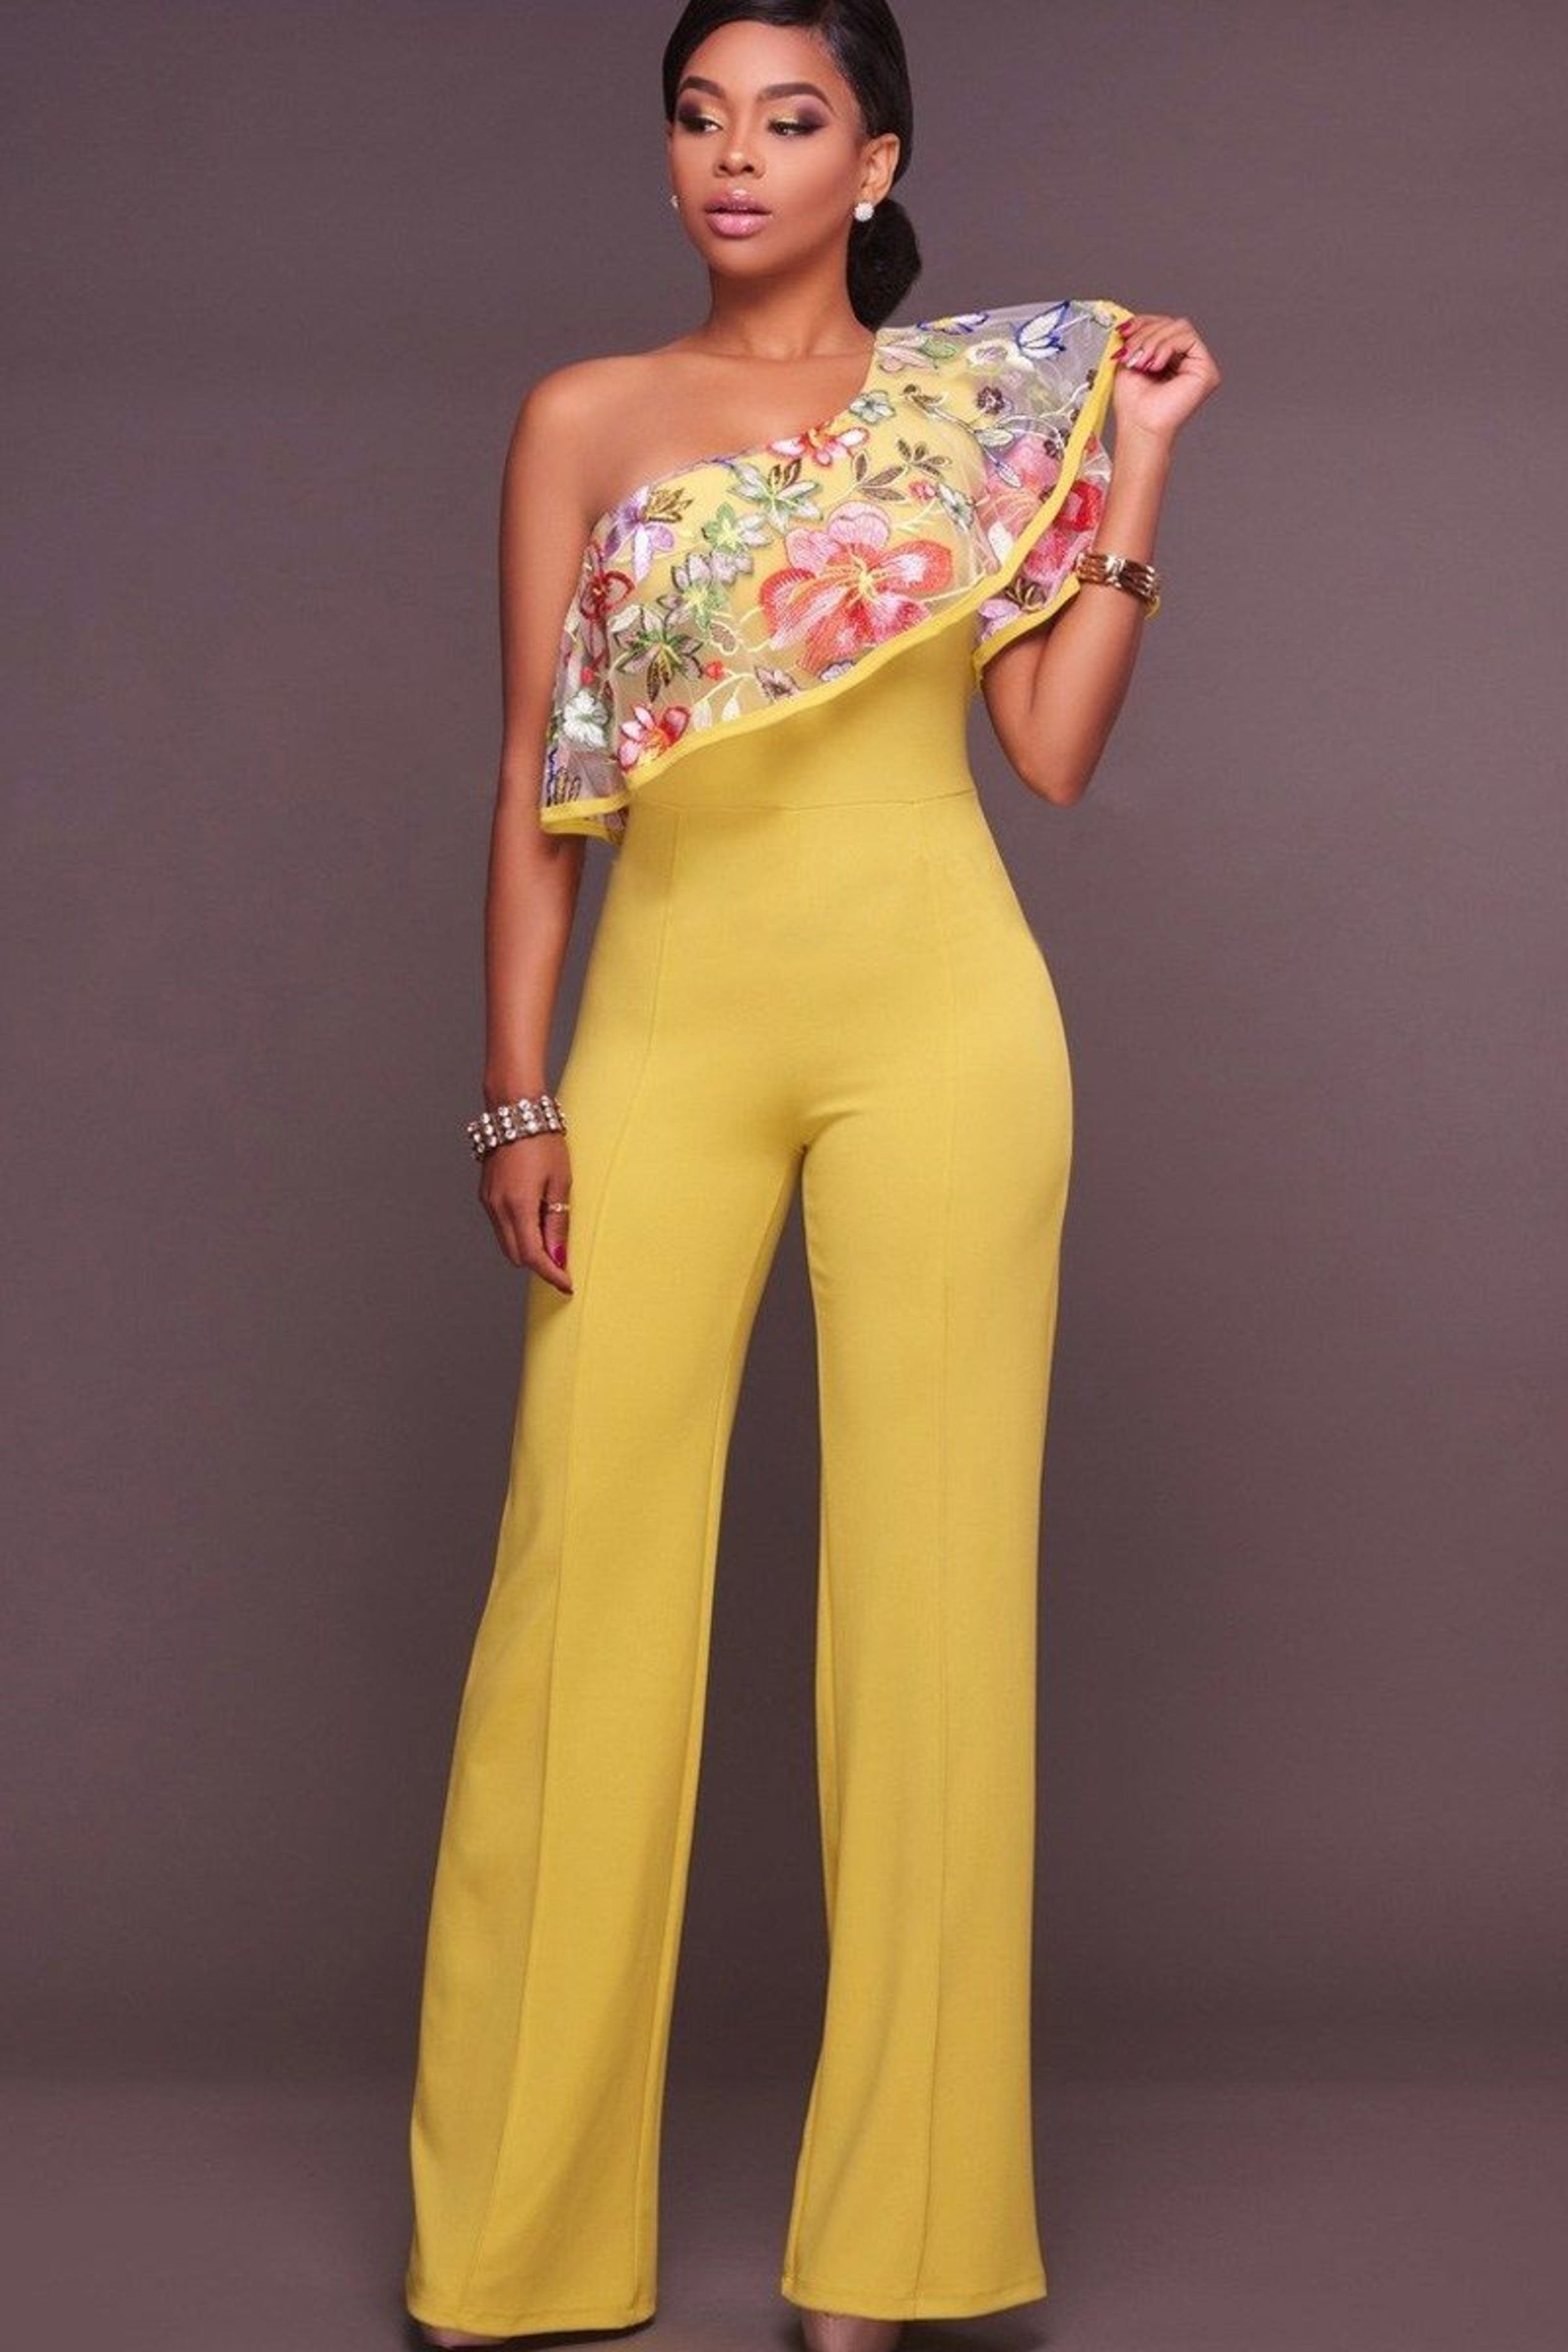 ONE SHOULDER YELLOW JUMPSUIT WITH FLORAL PRINTED ROMPER, Jumpsuit & playsuit, Luna Soul, Luna Soul